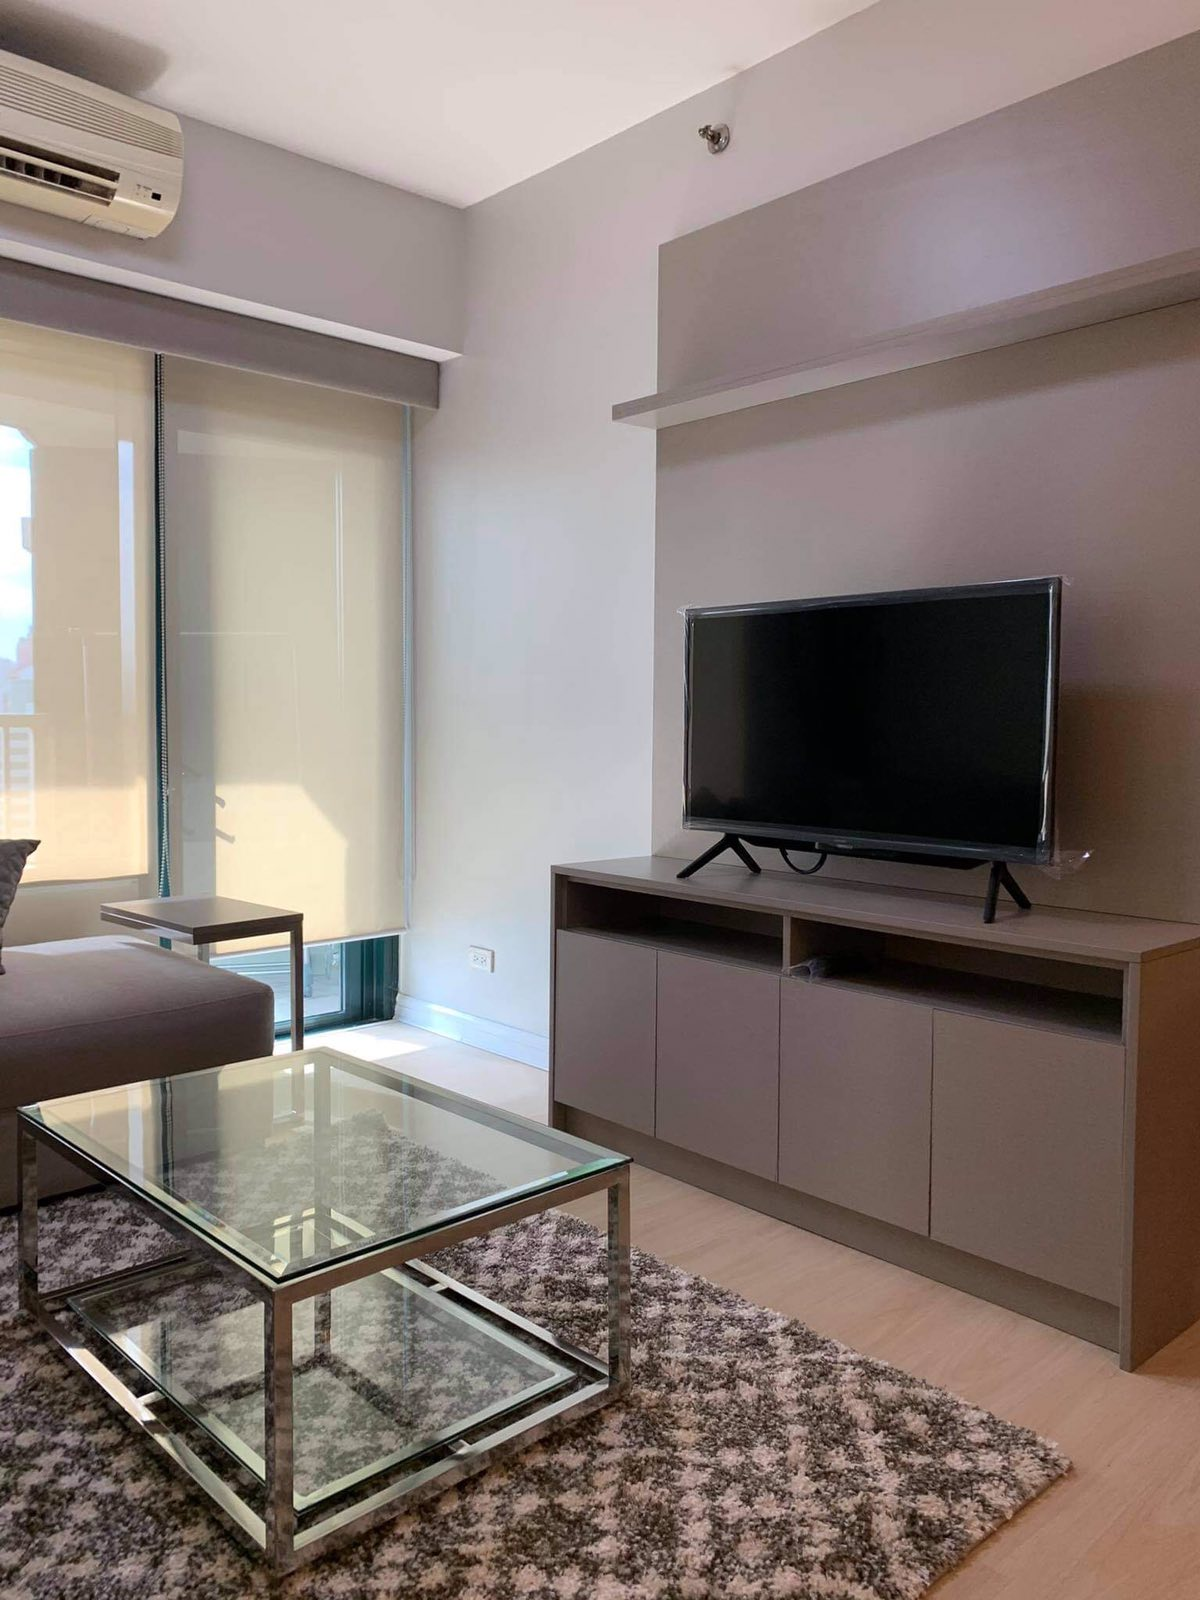 Apartments & Condos for rent in One Rockwell. ... One Rockwell. Makati. Fully Furnished 1 Bedroom for Rent at One Rockwell Makati